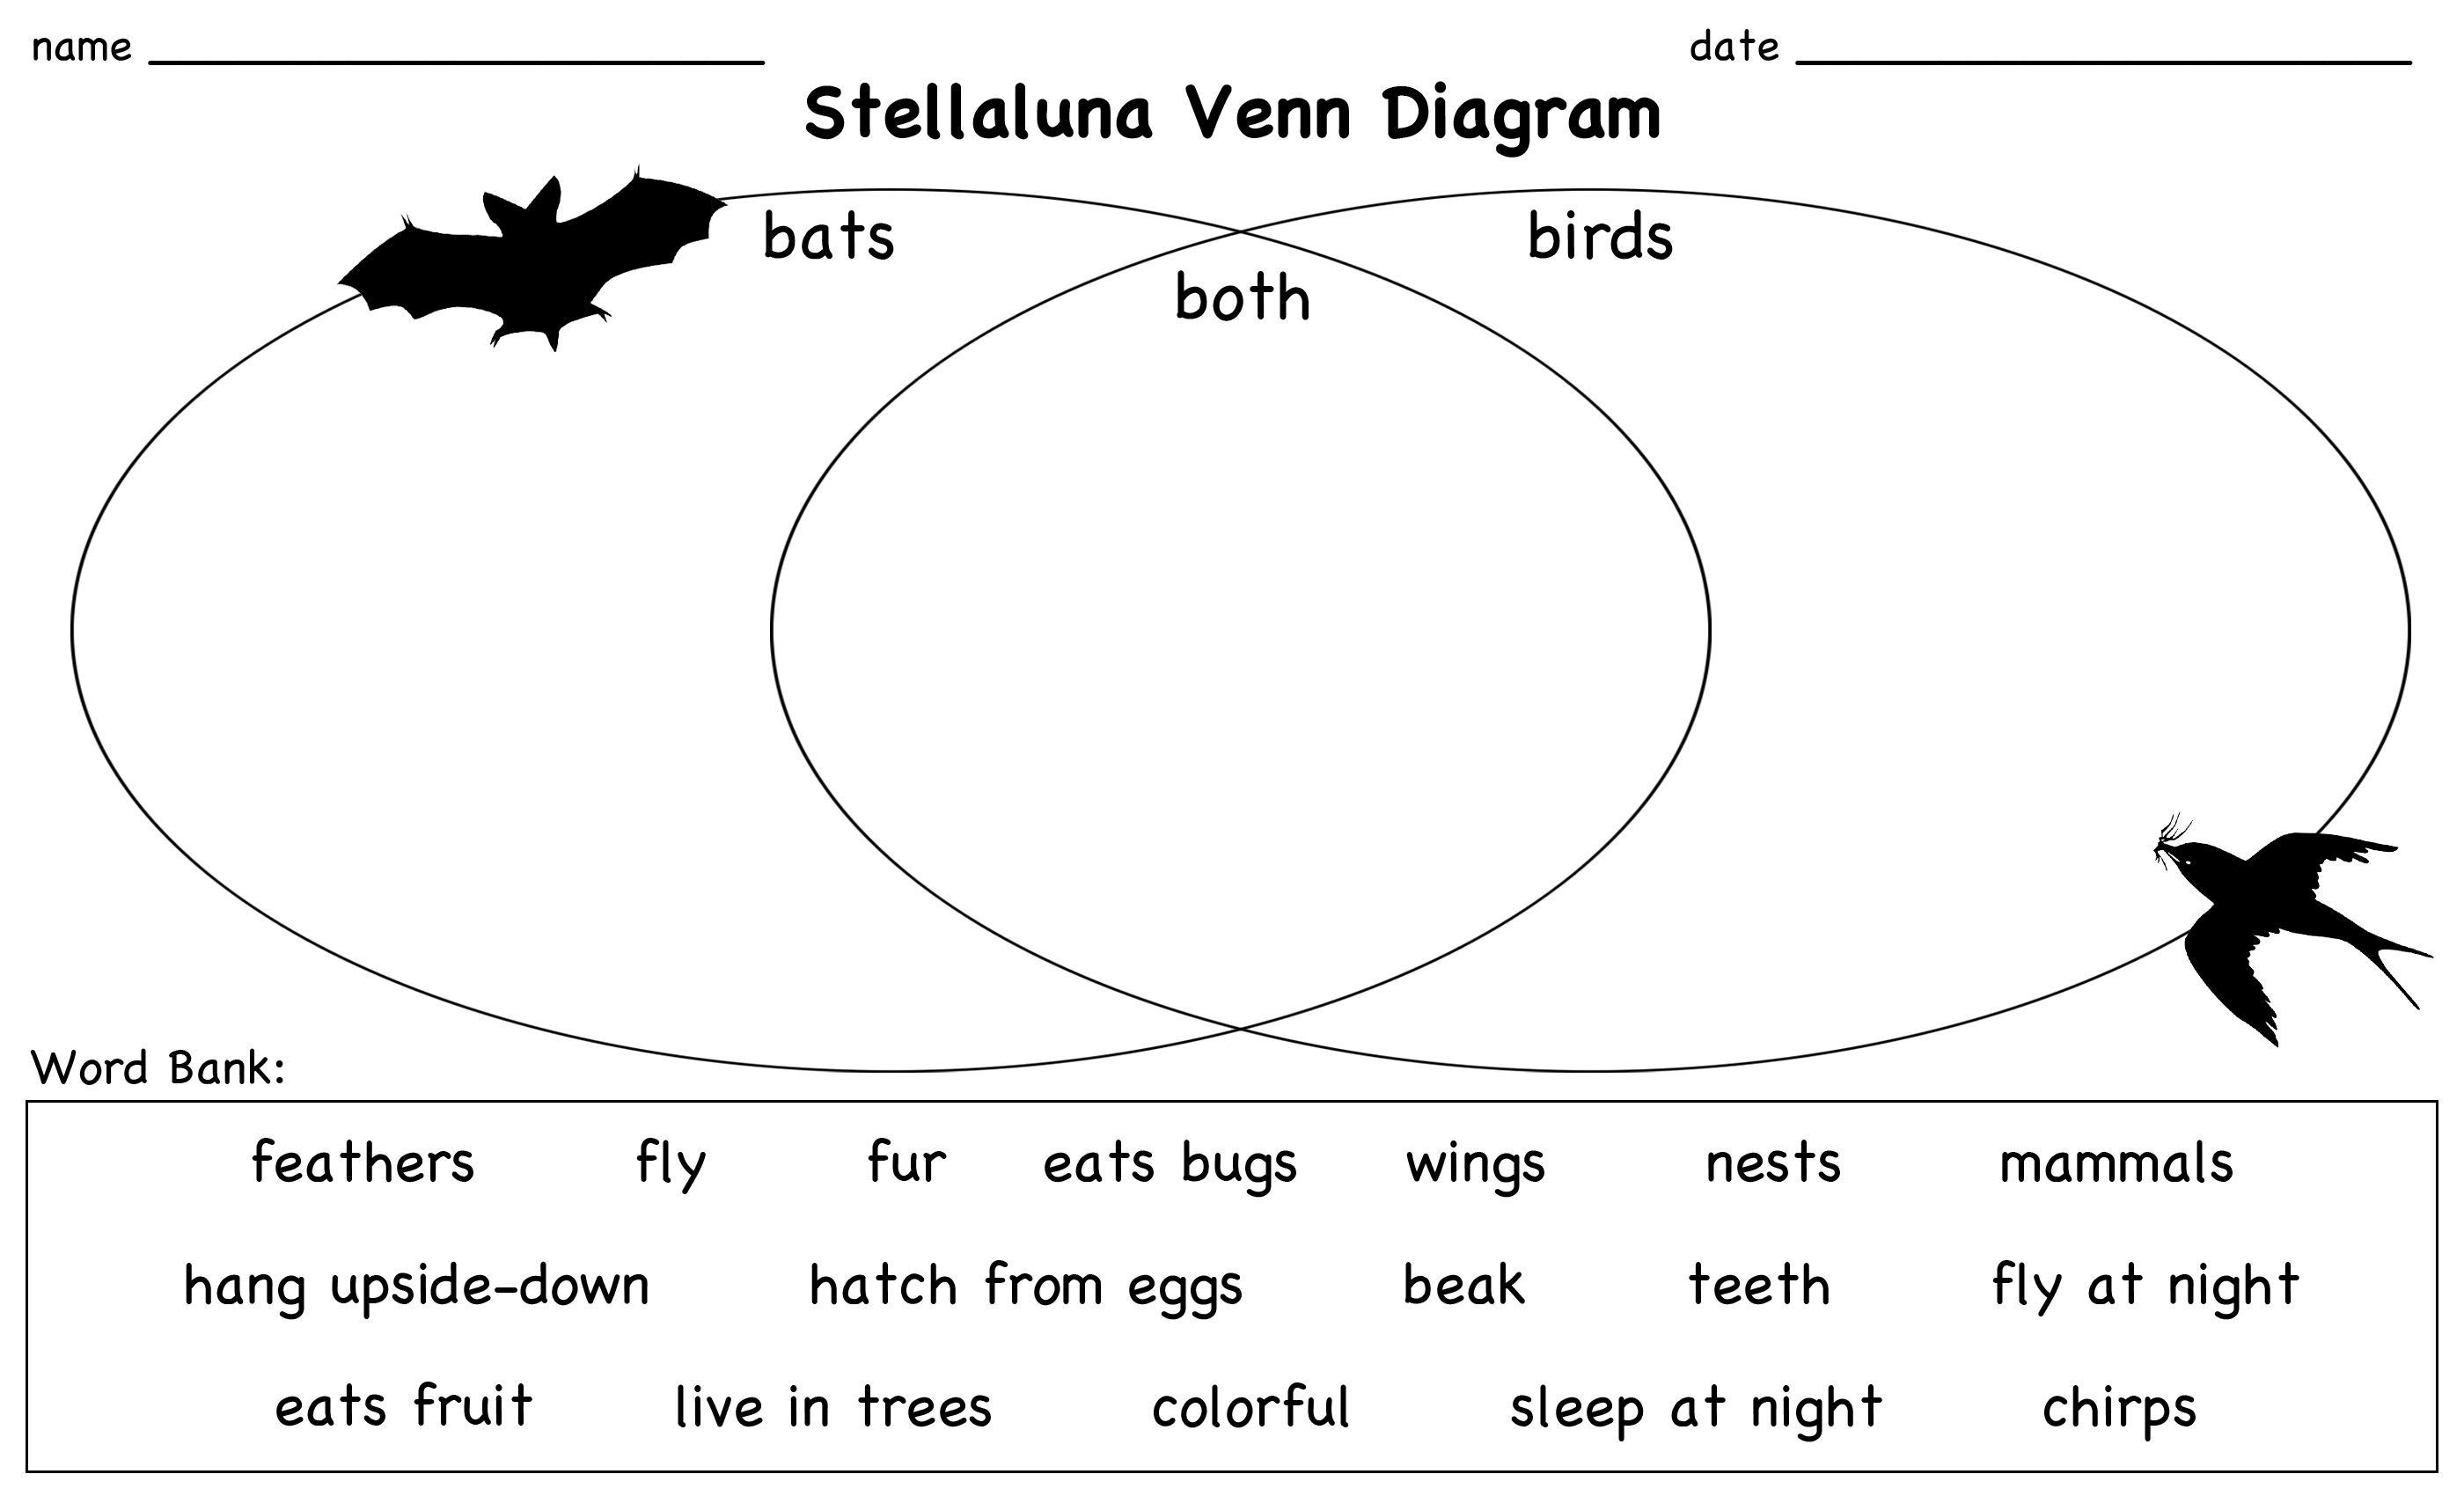 Stellaluna Venn Diagram Lesson